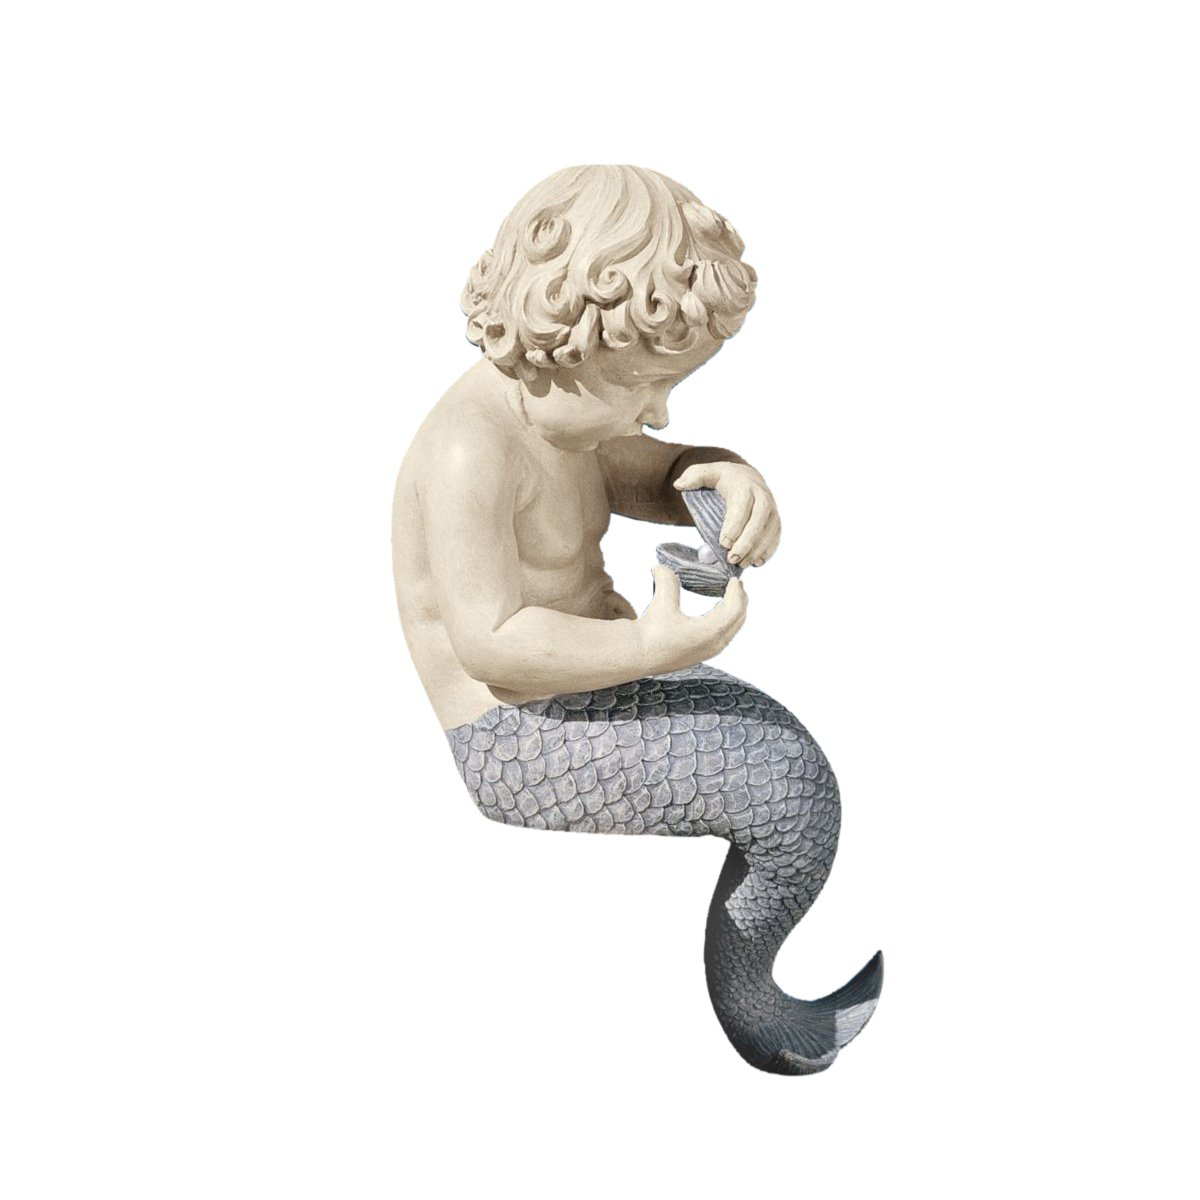 Design Toscano The Ocean's Little Treasures Sitting Sculpture